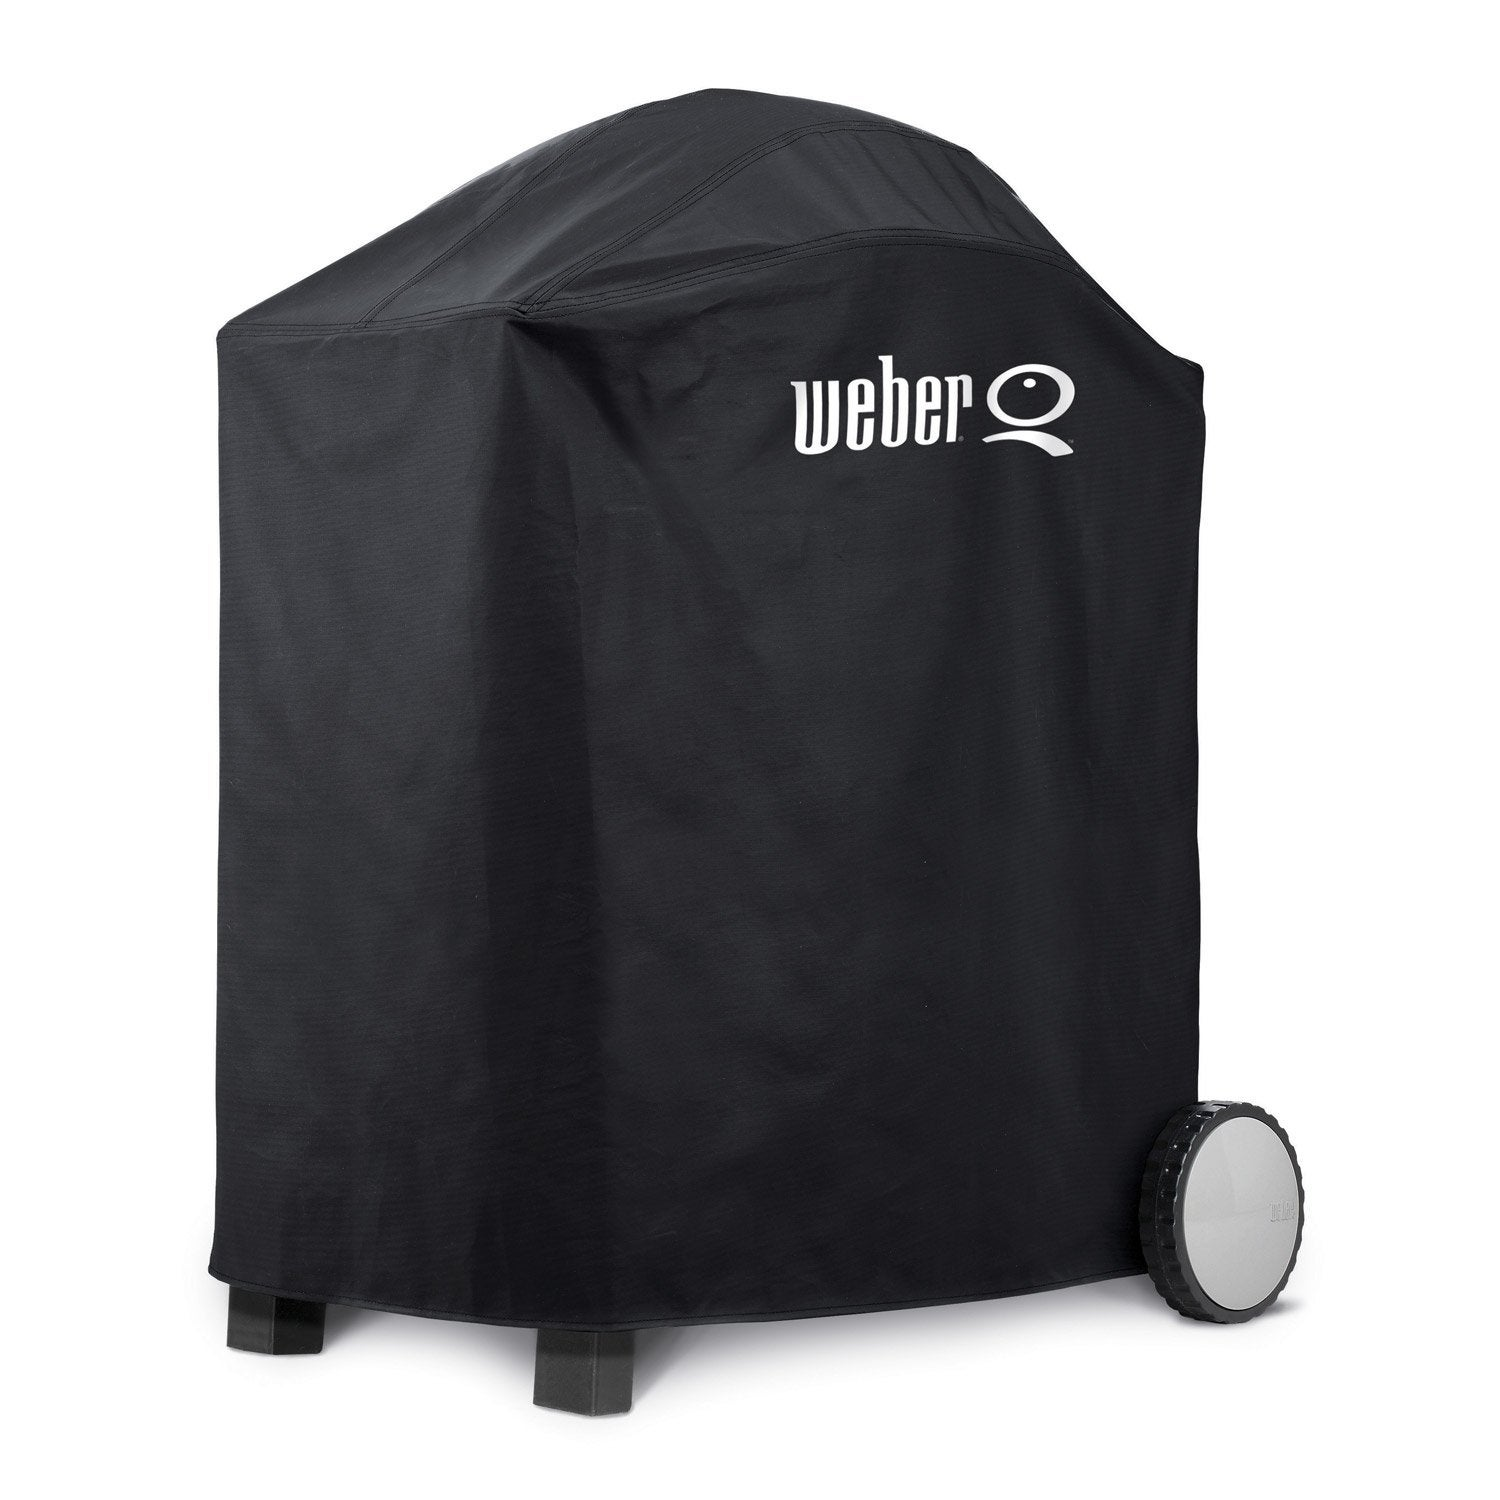 Housse de protection pour barbecue weber 77 x 93 x 99 cm for Housse barbecue leroy merlin